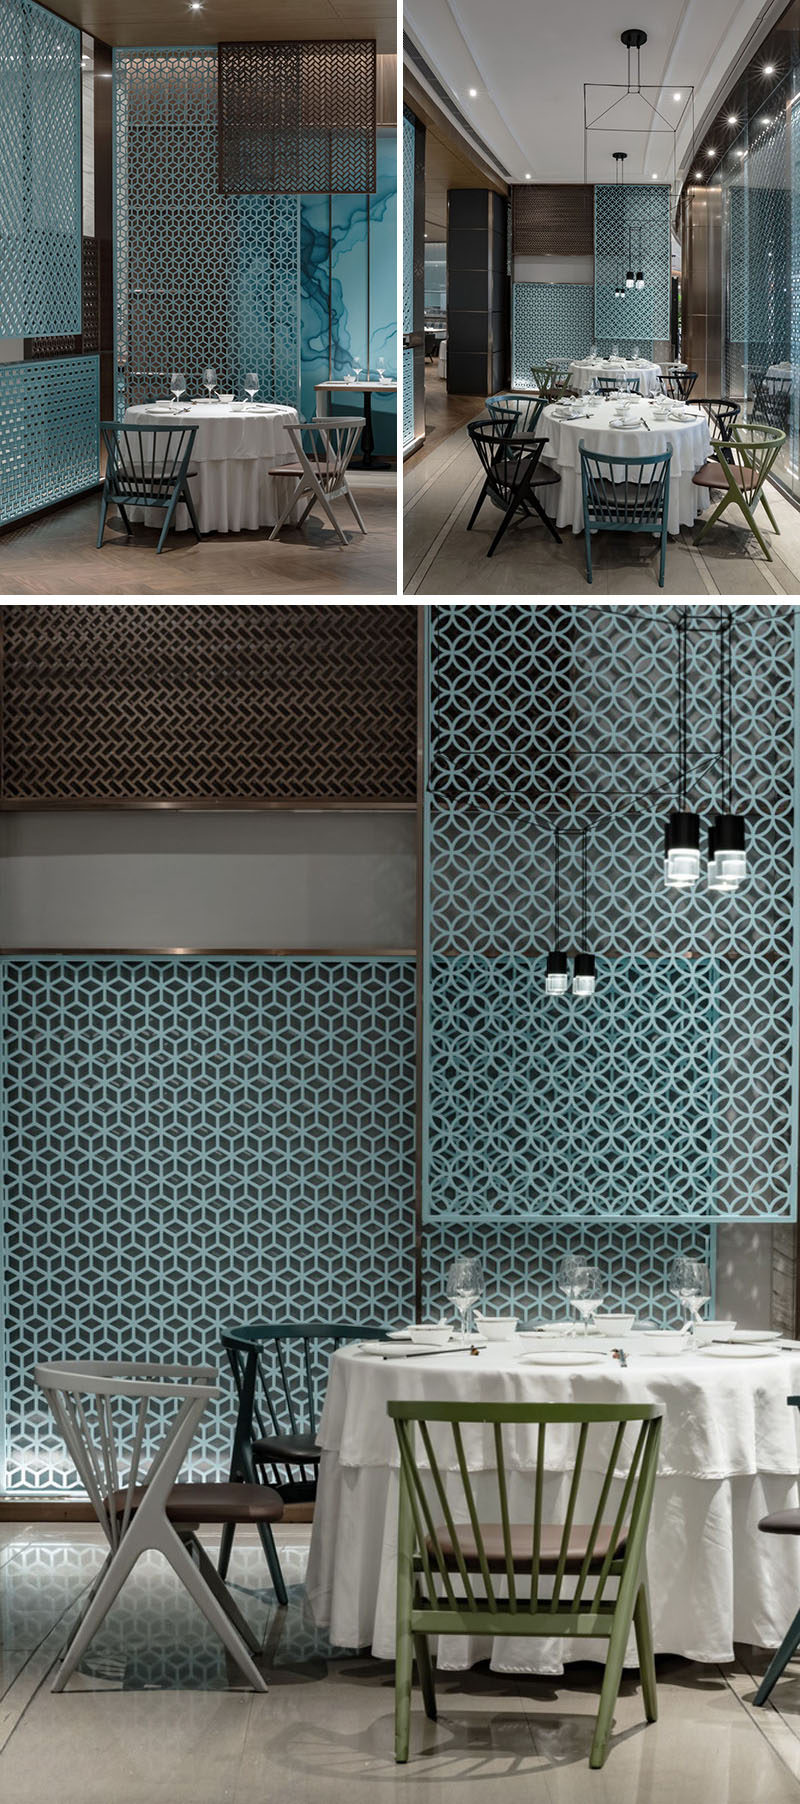 Throughout this modern restaurant, transparent decorative screens provide a patterned element to the interior. #DecorativeScreen #Pattern #RestaurantDesign